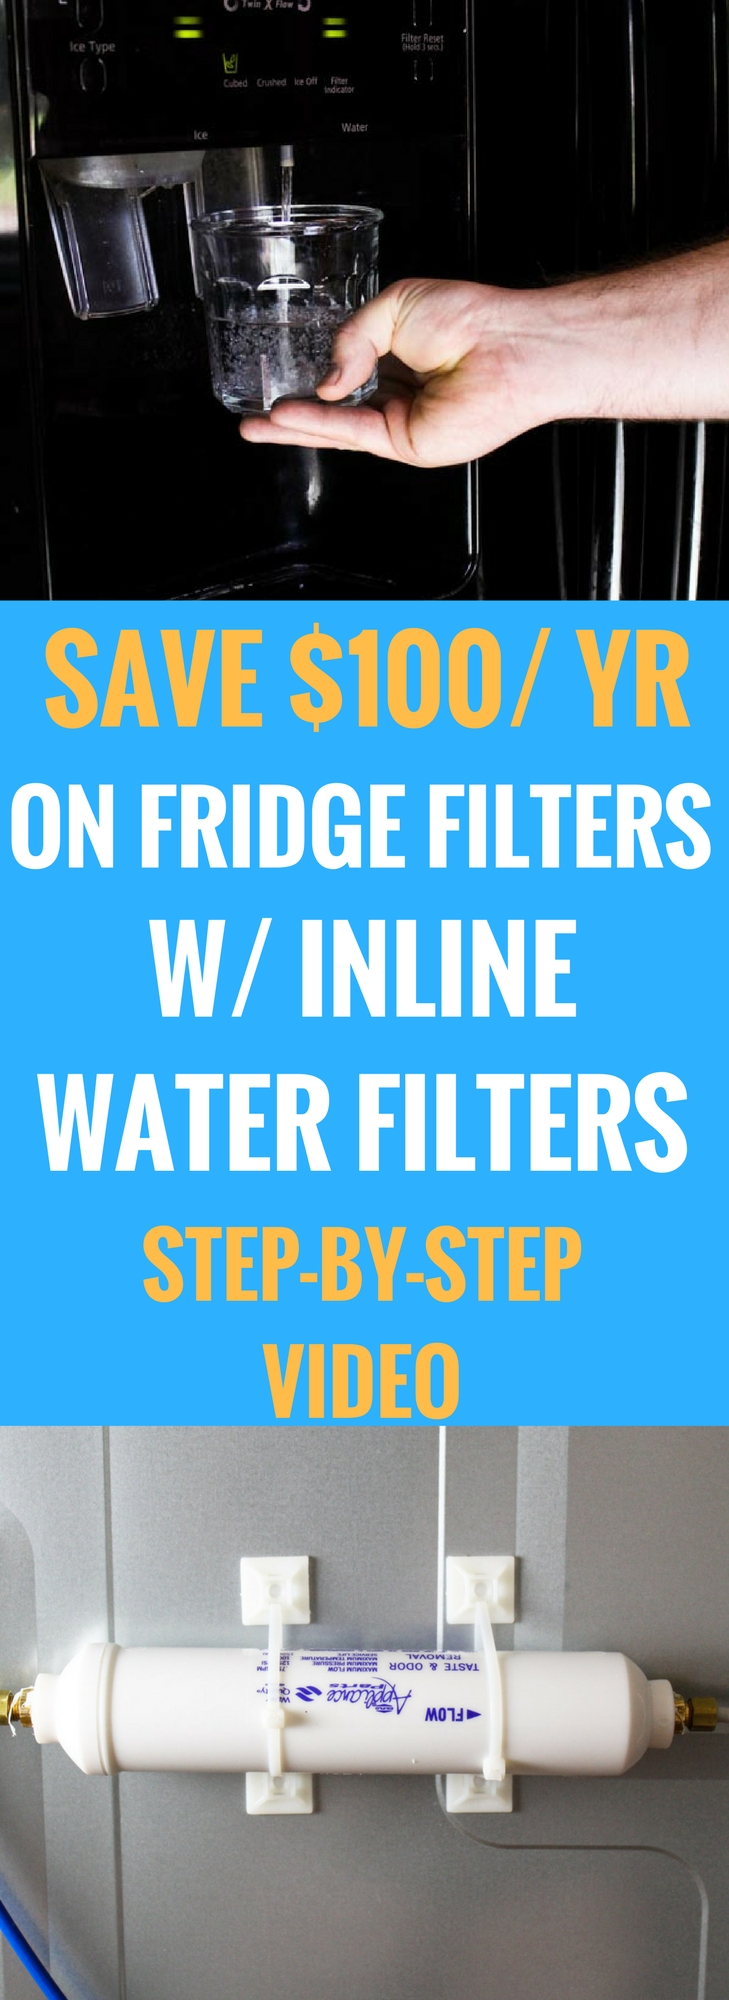 How to install a refrigerator inline water filter and save $100 a year on water filters